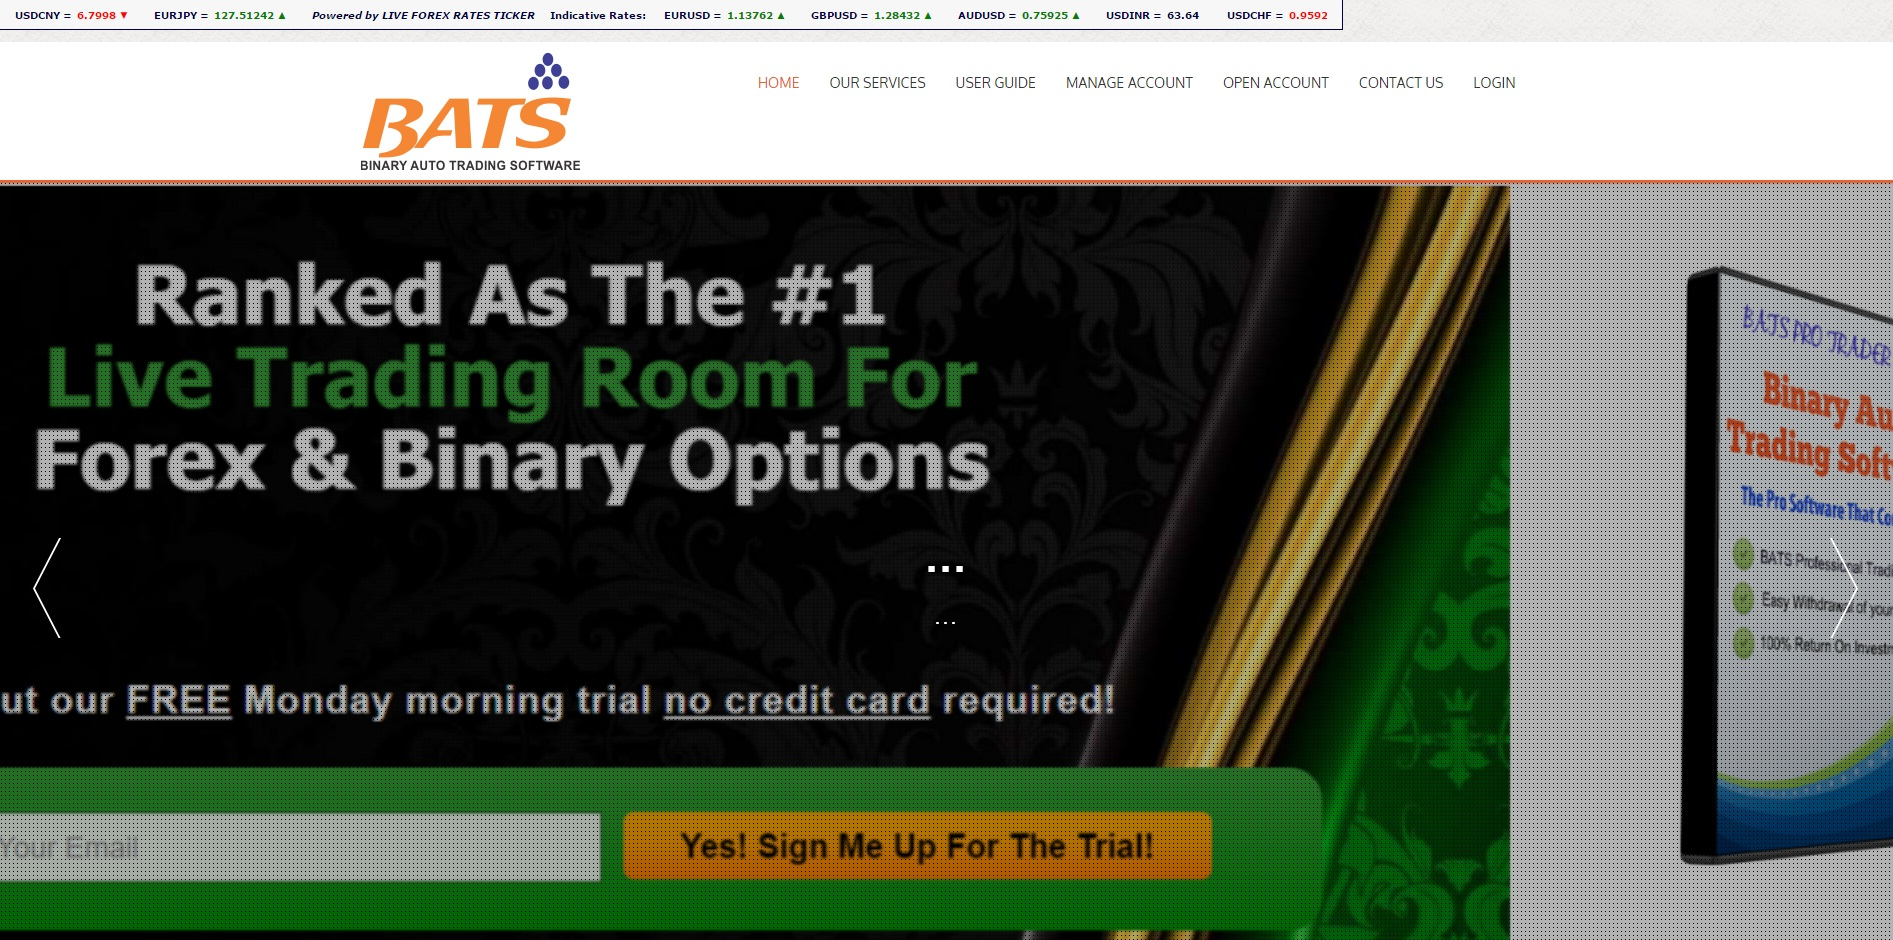 Auto trade software for binary options